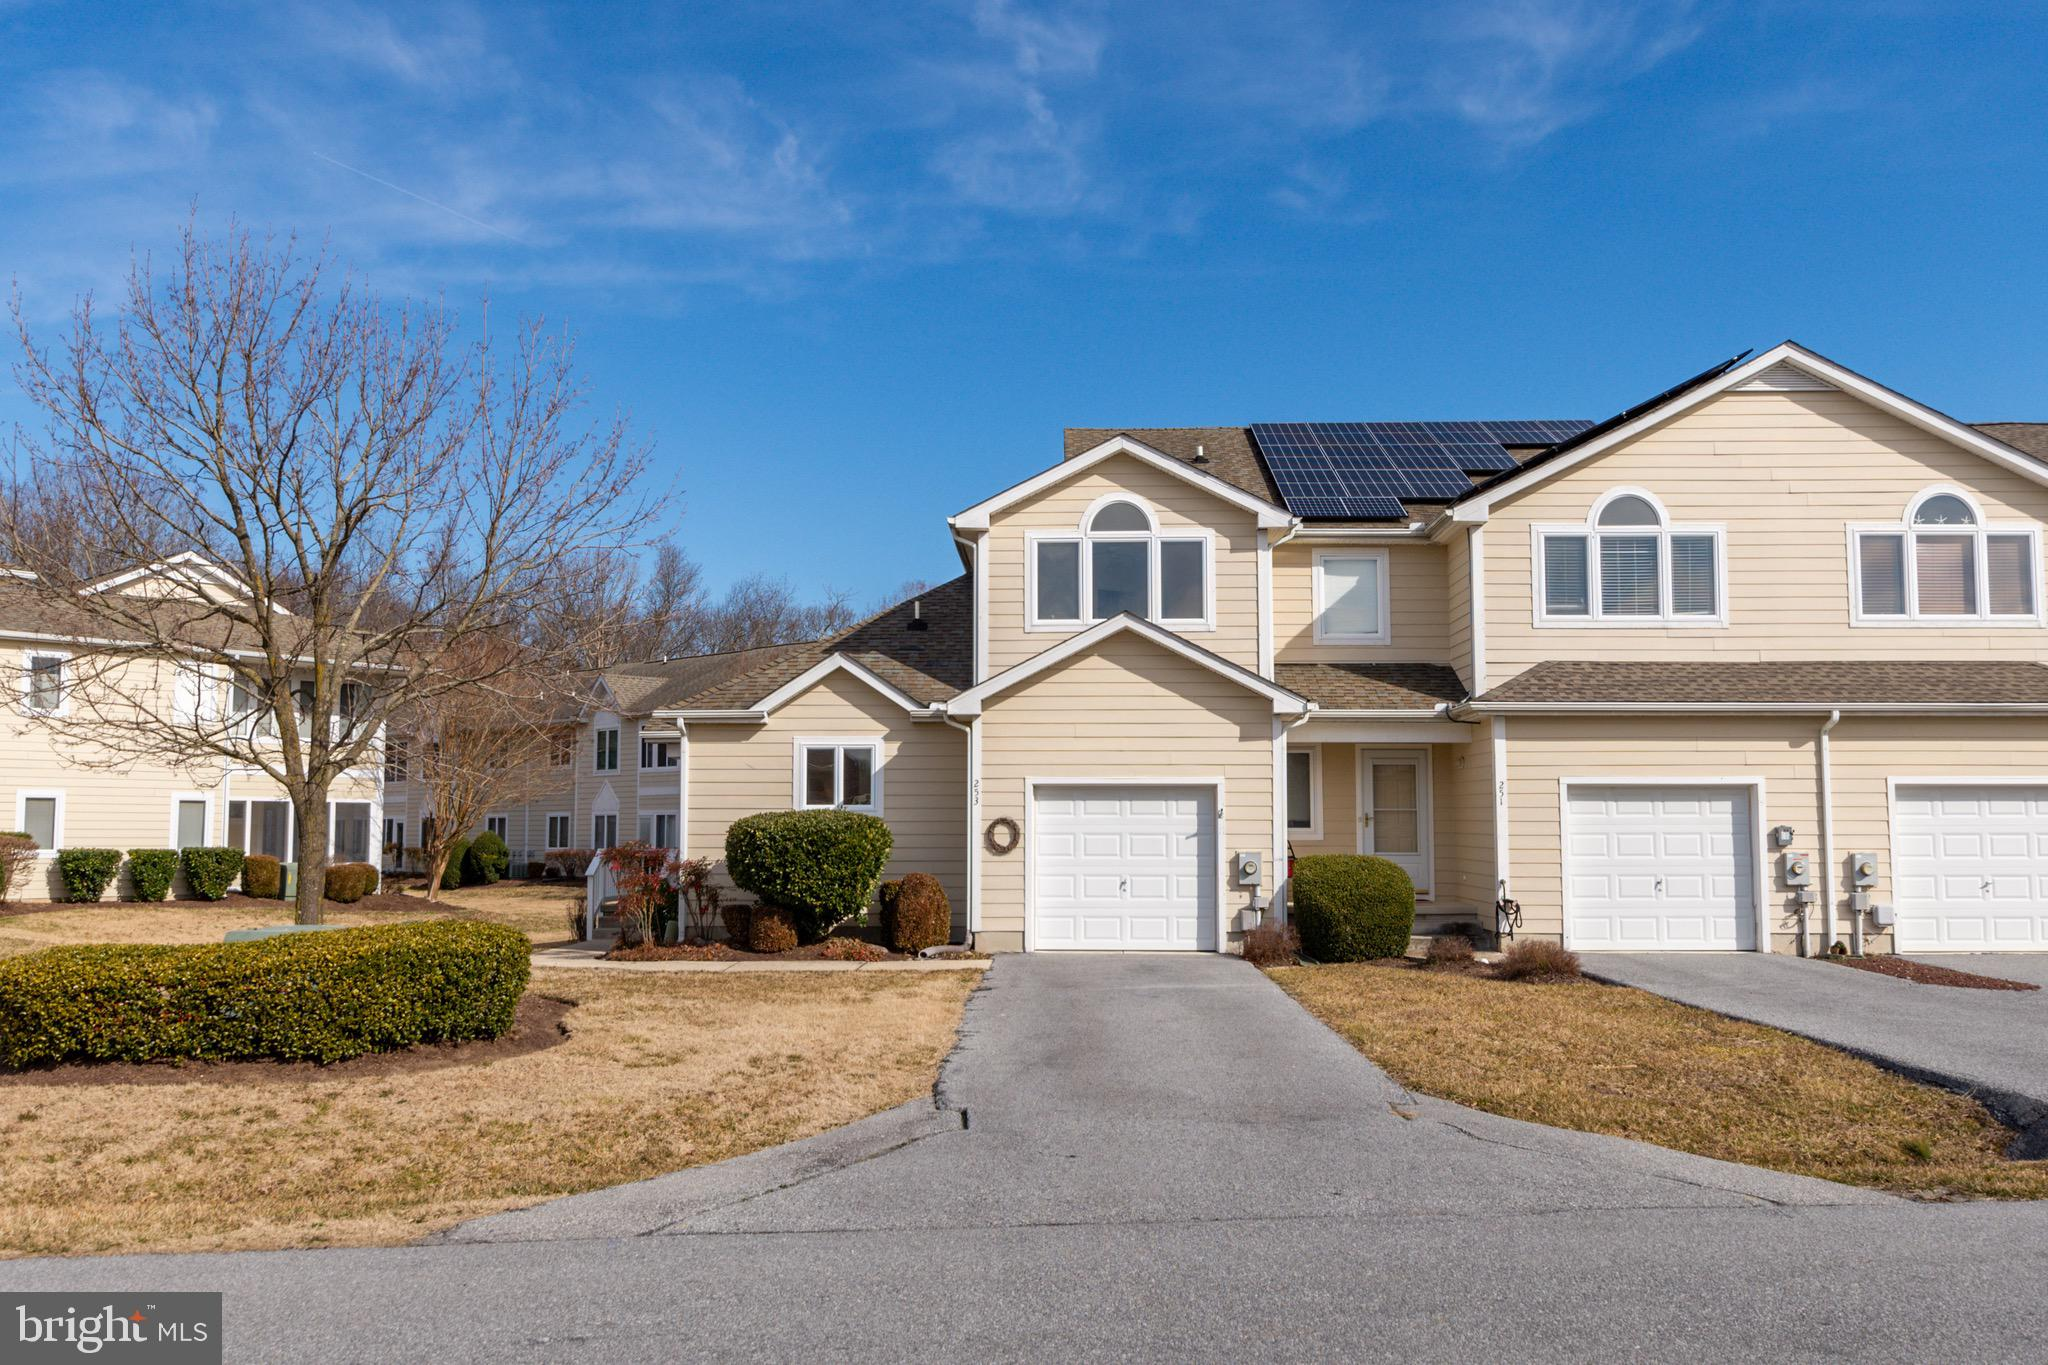 3 BR, 2.5 BA End Unit townhouse with lots of natural light,  located in Plantations East! Featuring